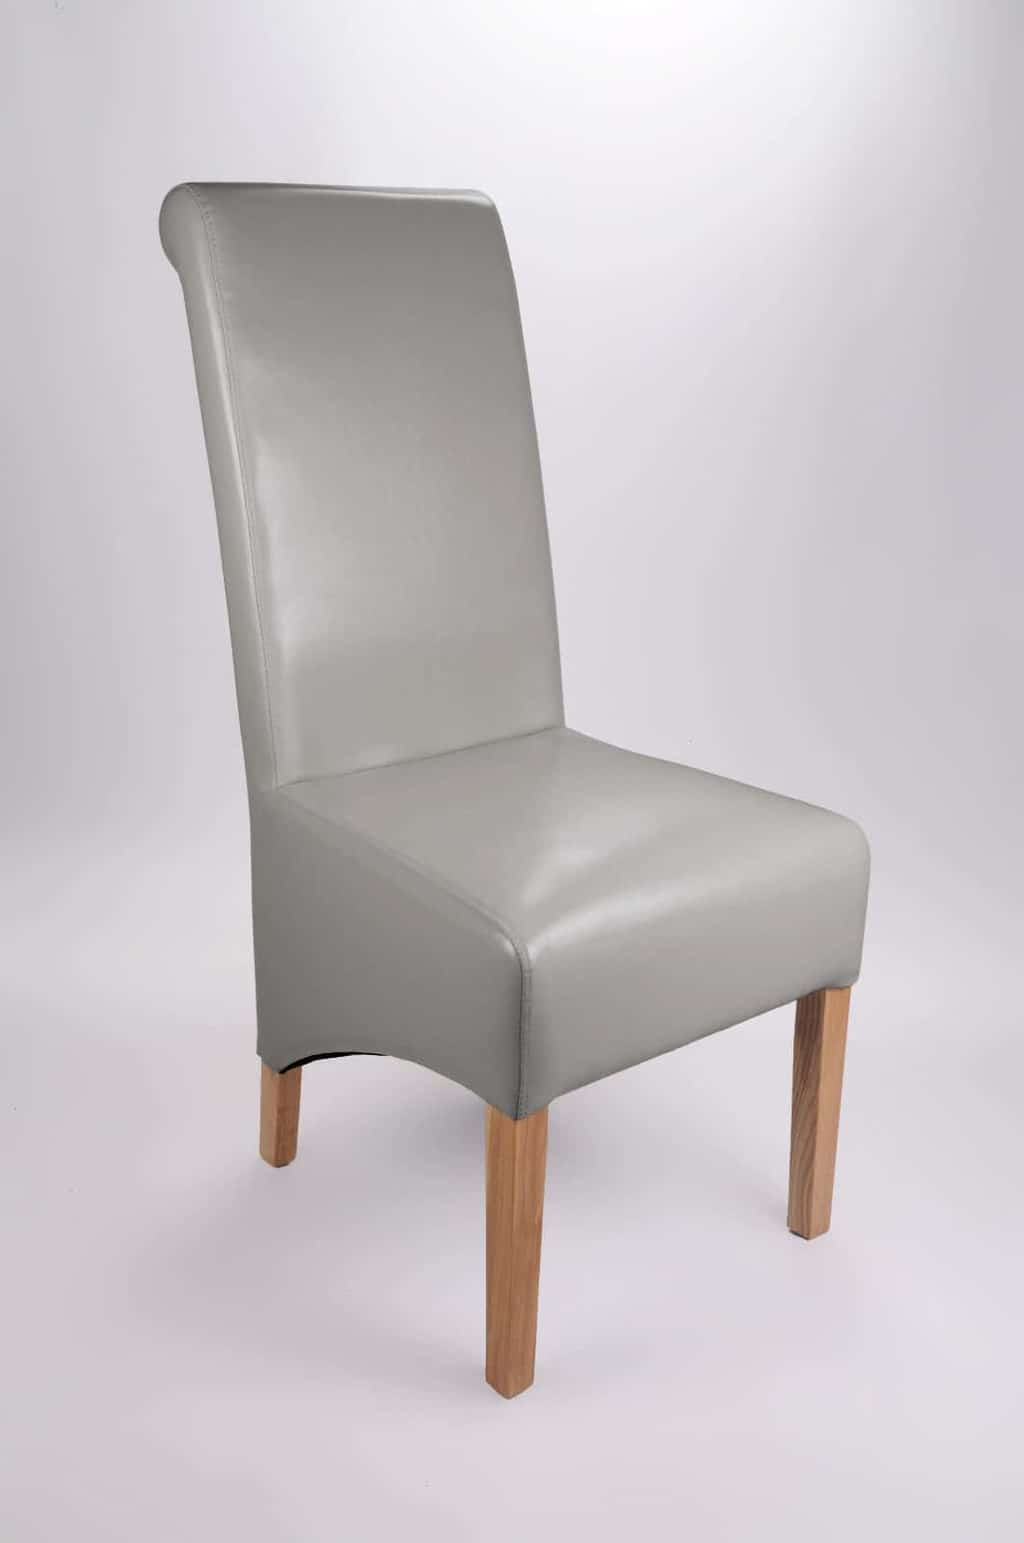 grey leather recliner chair uk bar chairs with backs set of two bonded oak legs high roll back